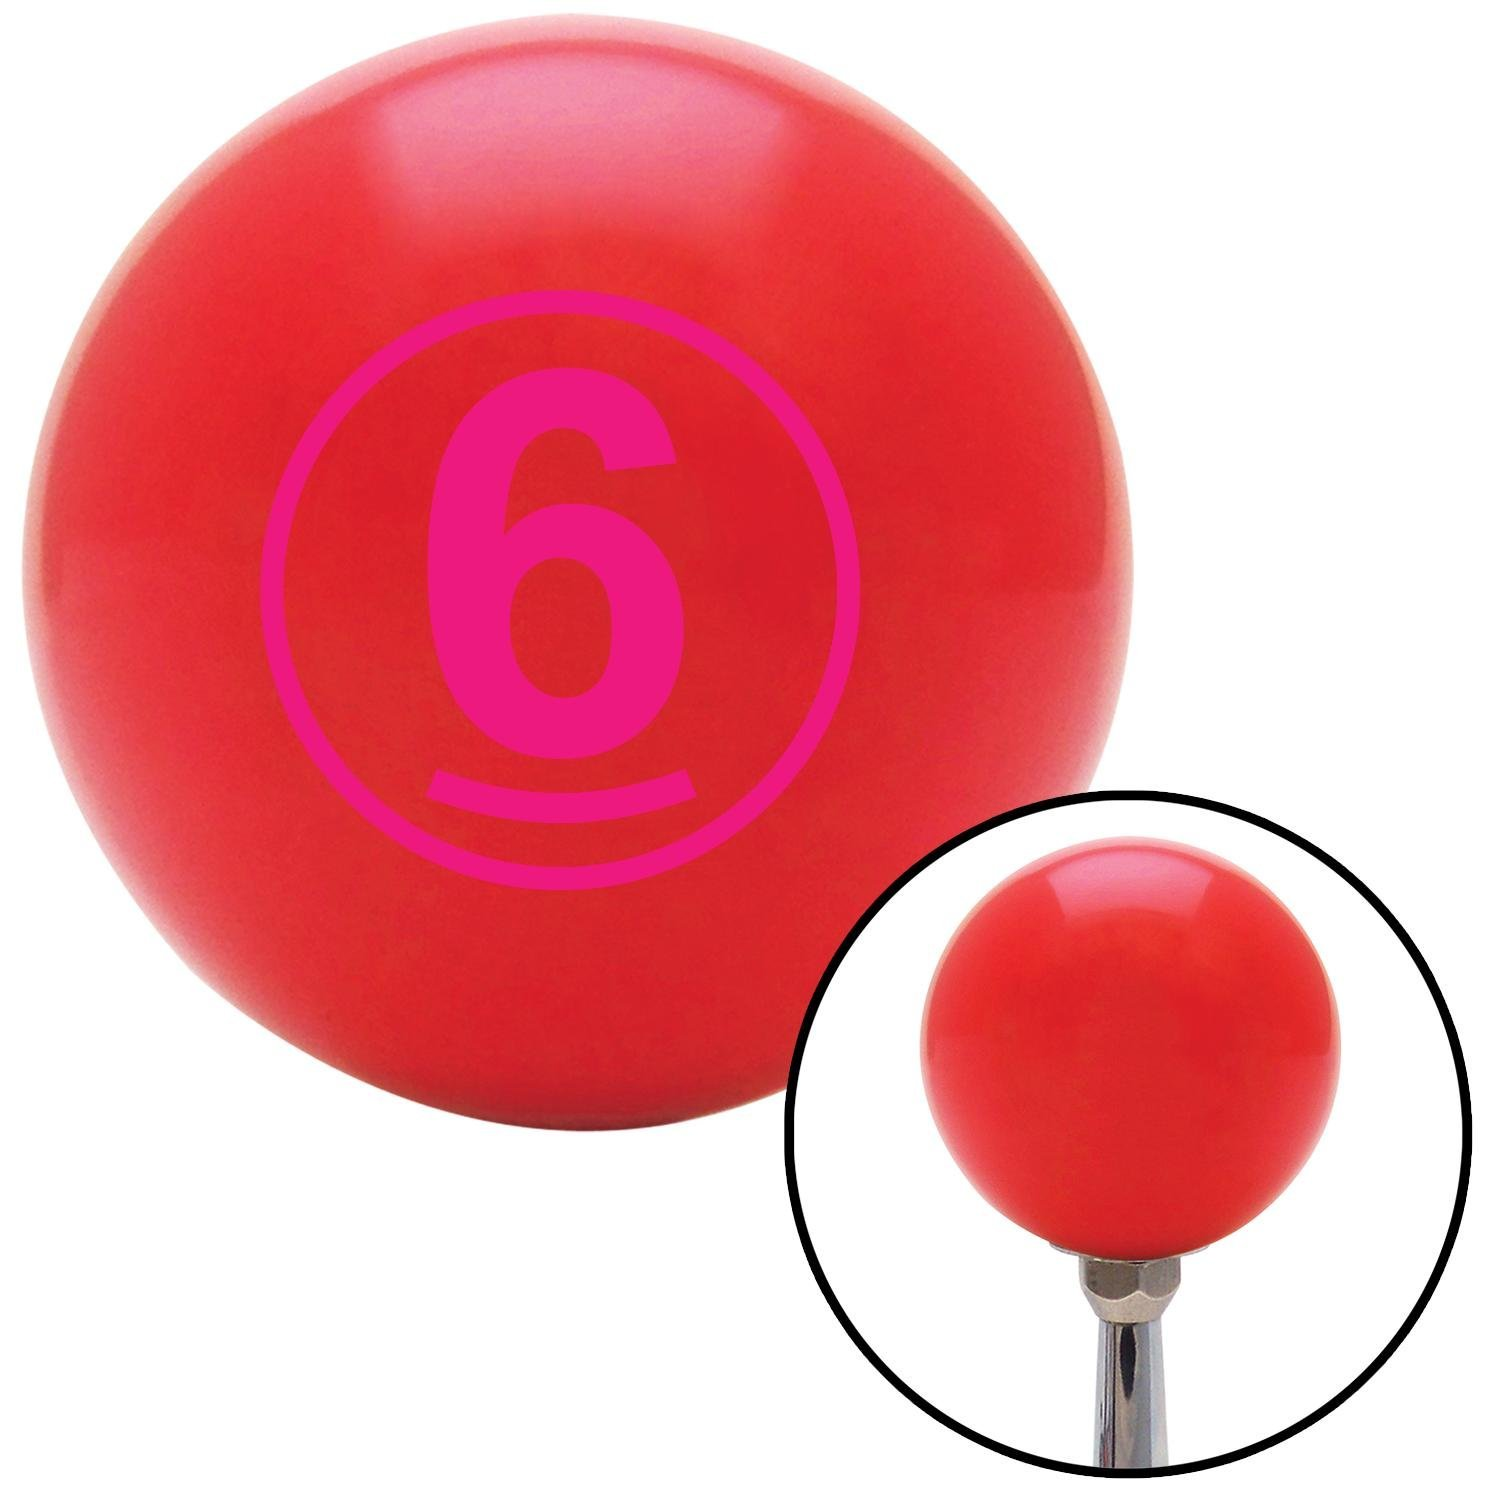 American Shifter 94524 Red Shift Knob with M16 x 1.5 Insert Pink Ball 6